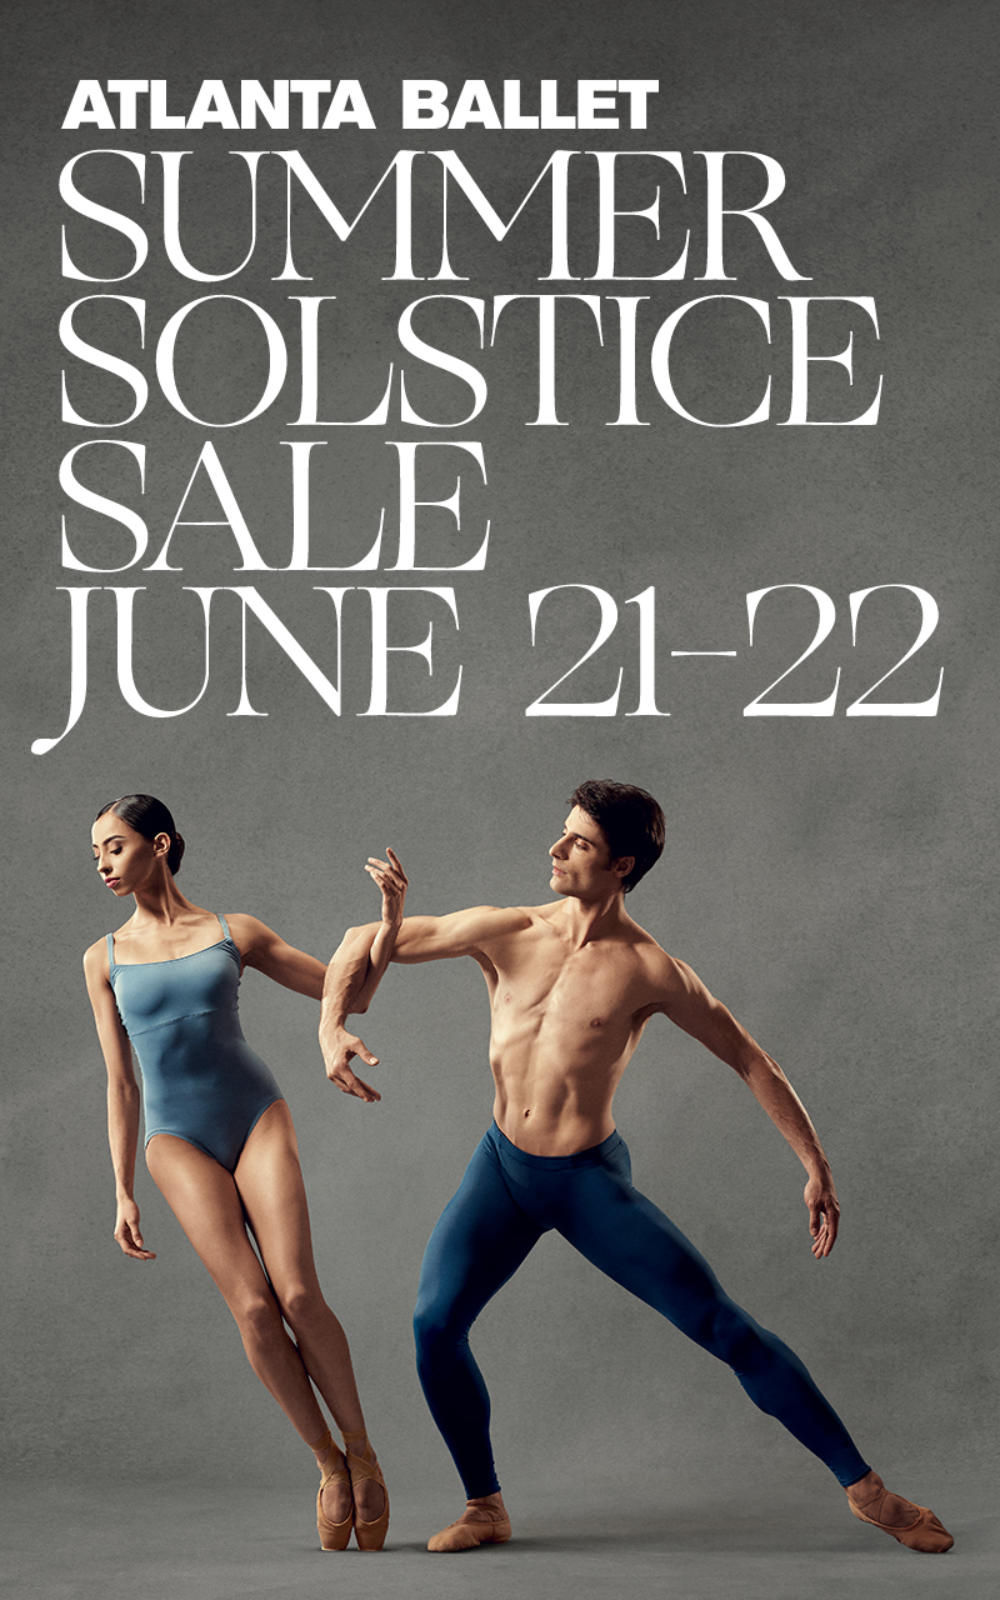 Save 50% with our 2-day Summer Solstice Sale